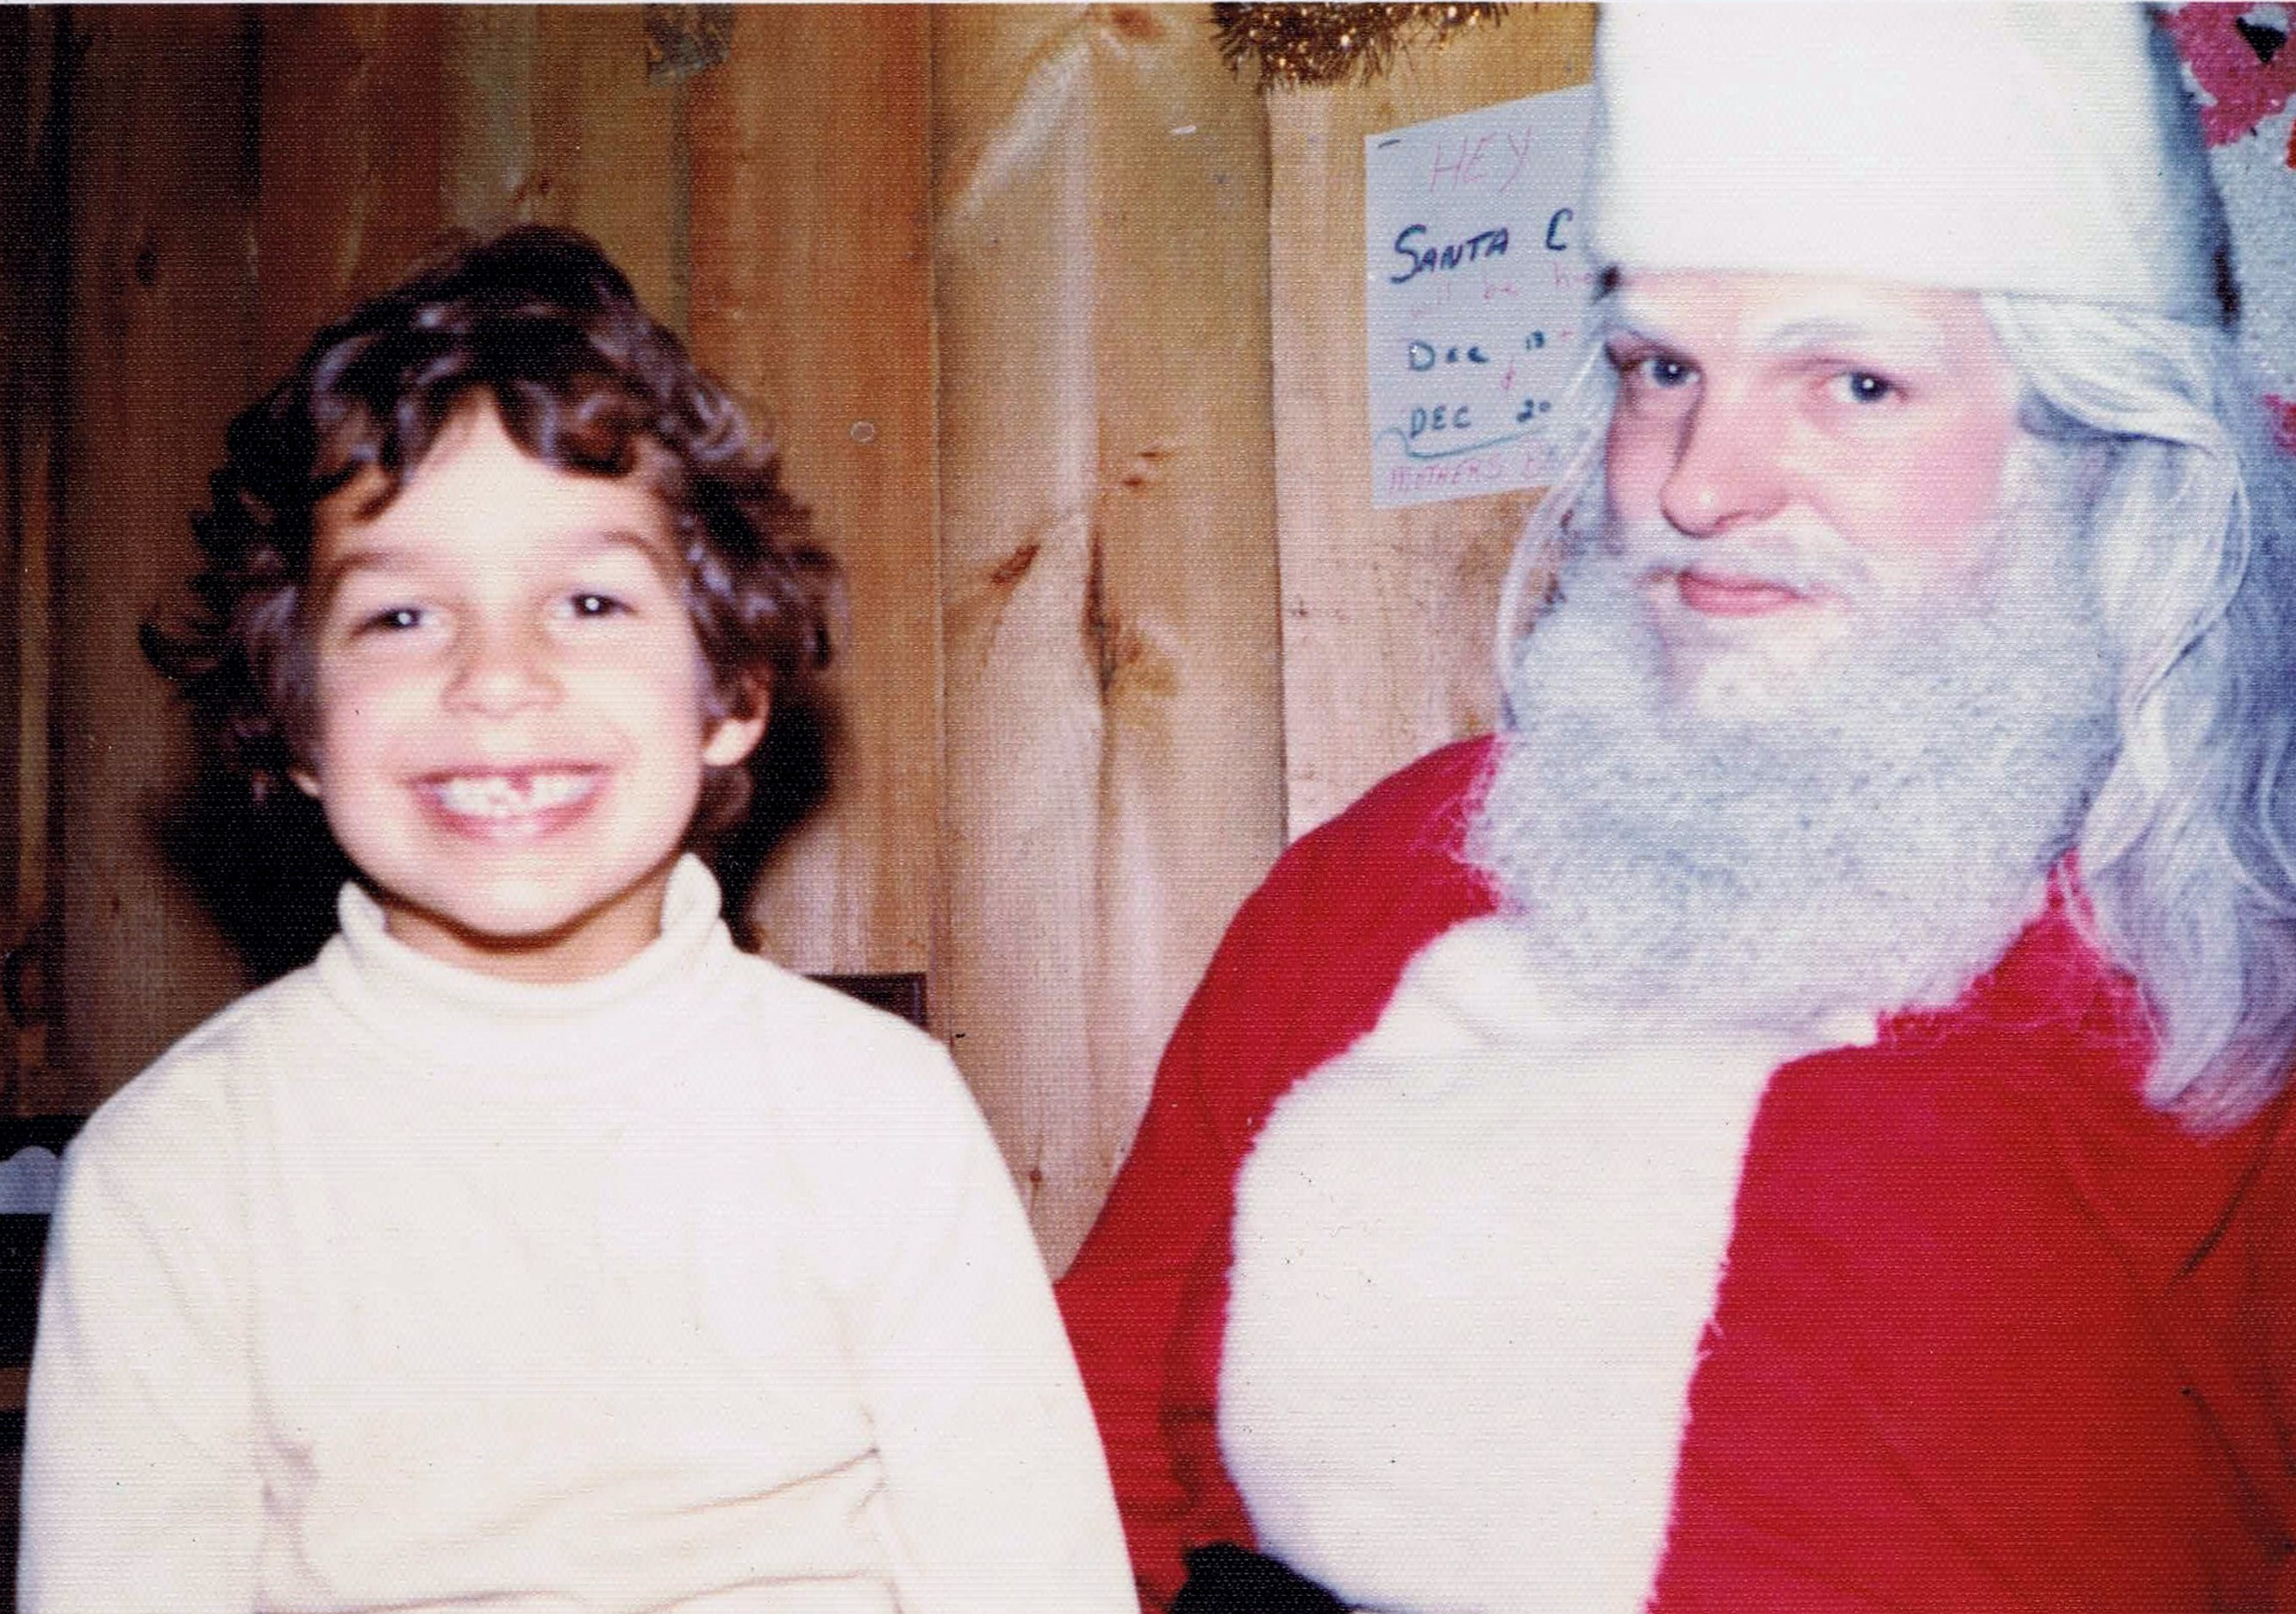 Brian and Santa at Firehouse Pizza in Newport